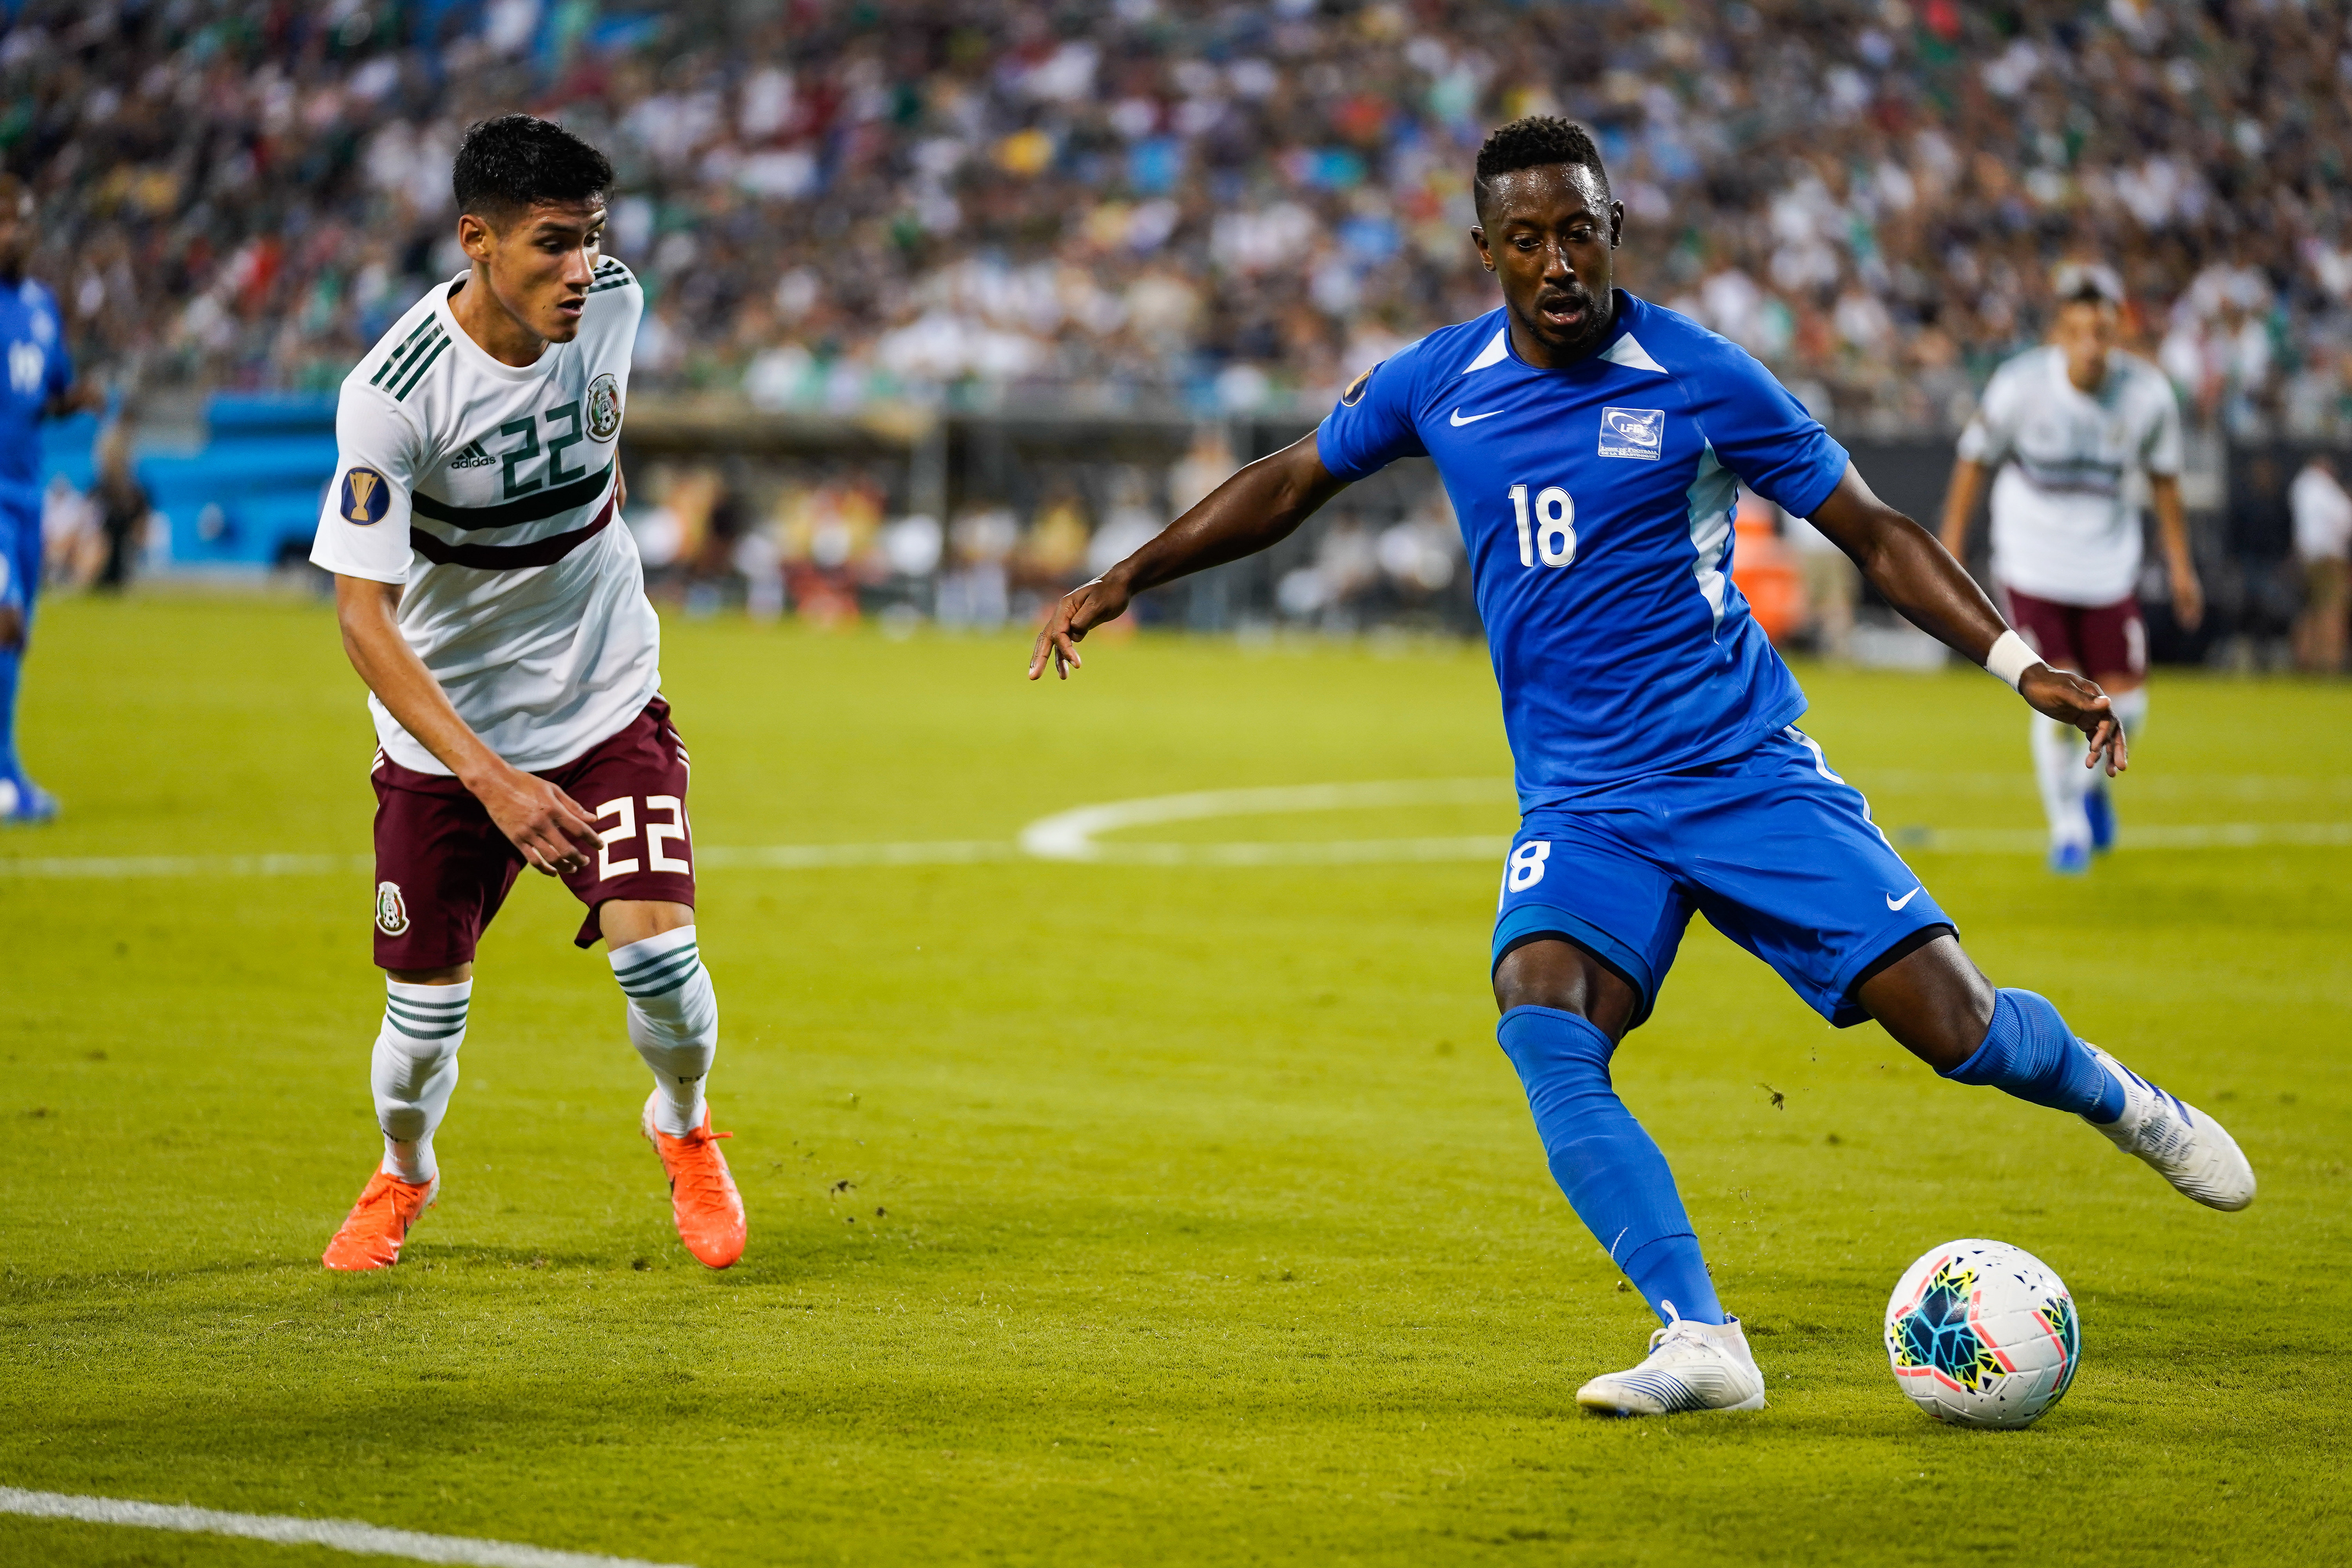 Soccer: CONCACAF Gold Cup-Martinique at Mexico